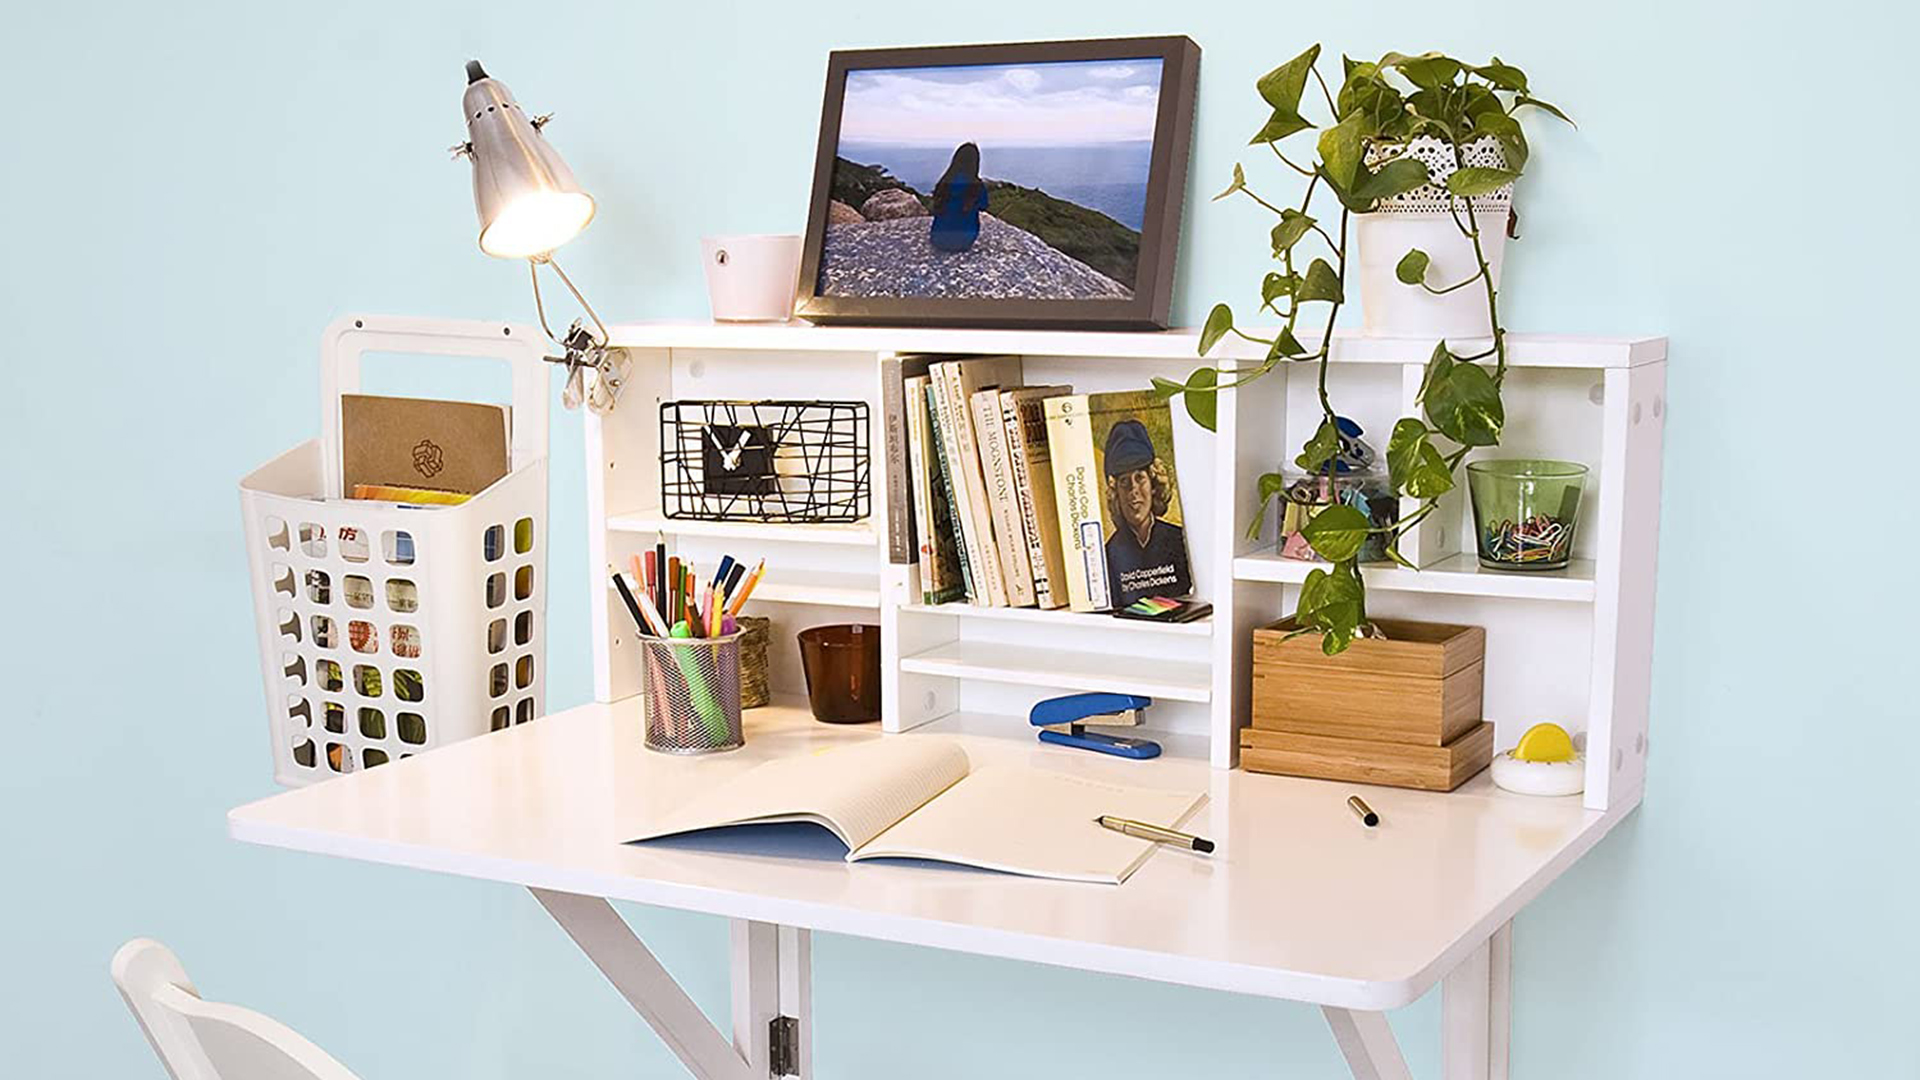 Wall Mounted Desks That Are Perfect For Small Spaces Sheknows